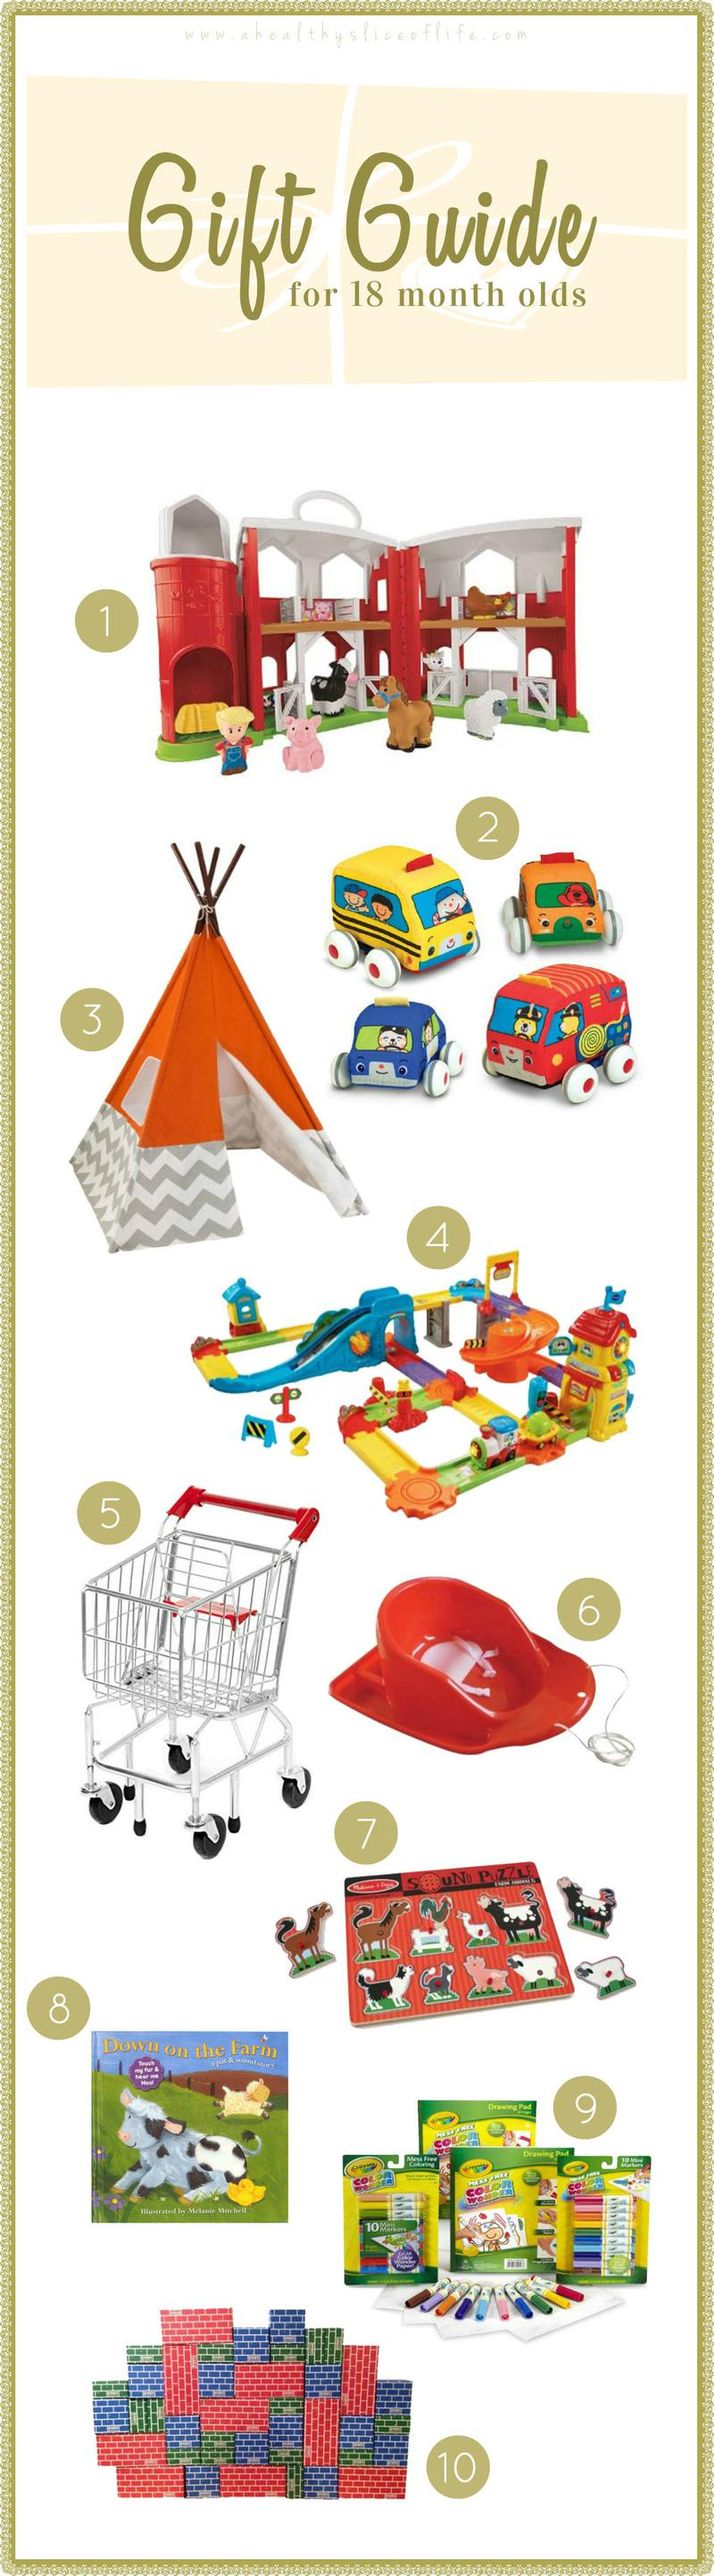 Gift ideas for toddlers 18 months a healthy slice of life gift guide 18 months old negle Image collections